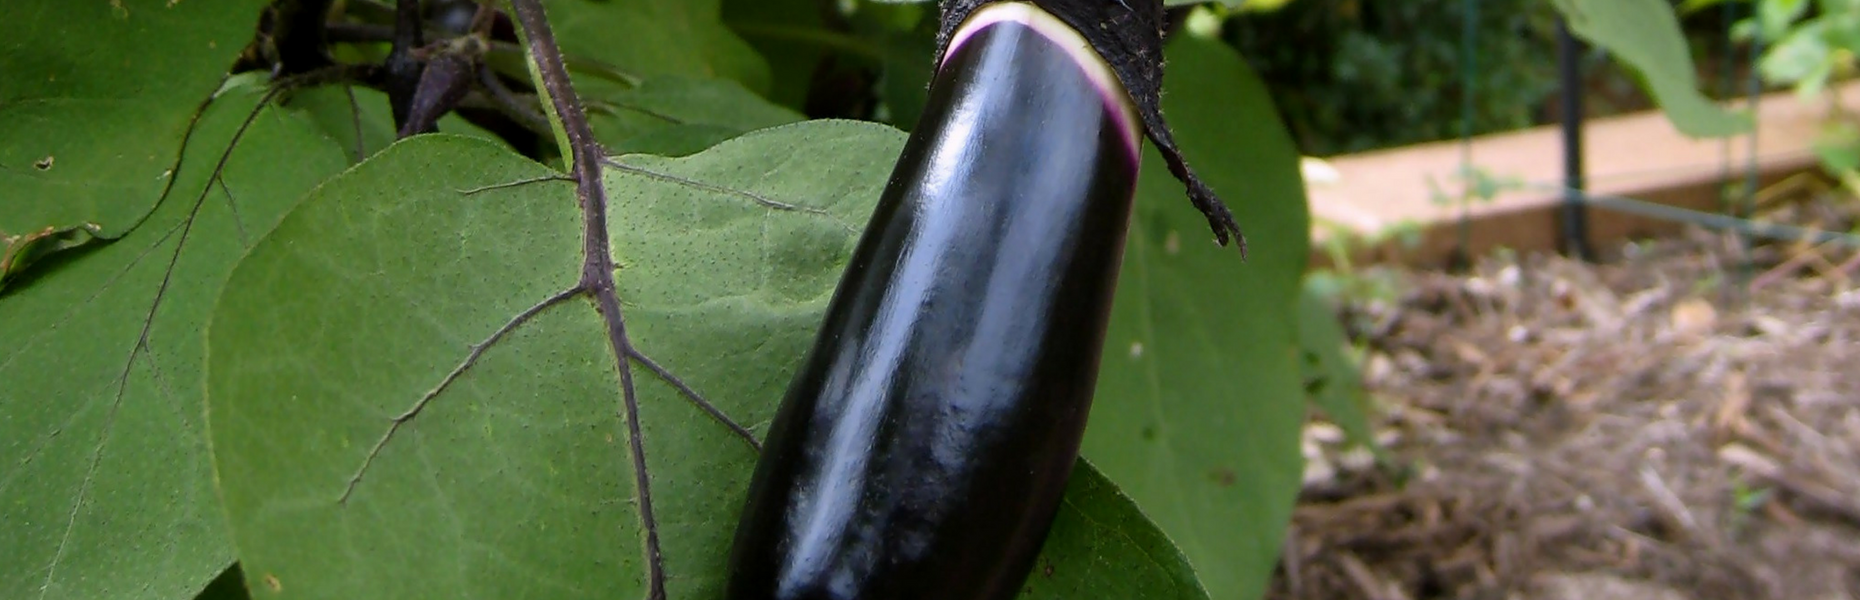 Nutritional Value Of Eggplant